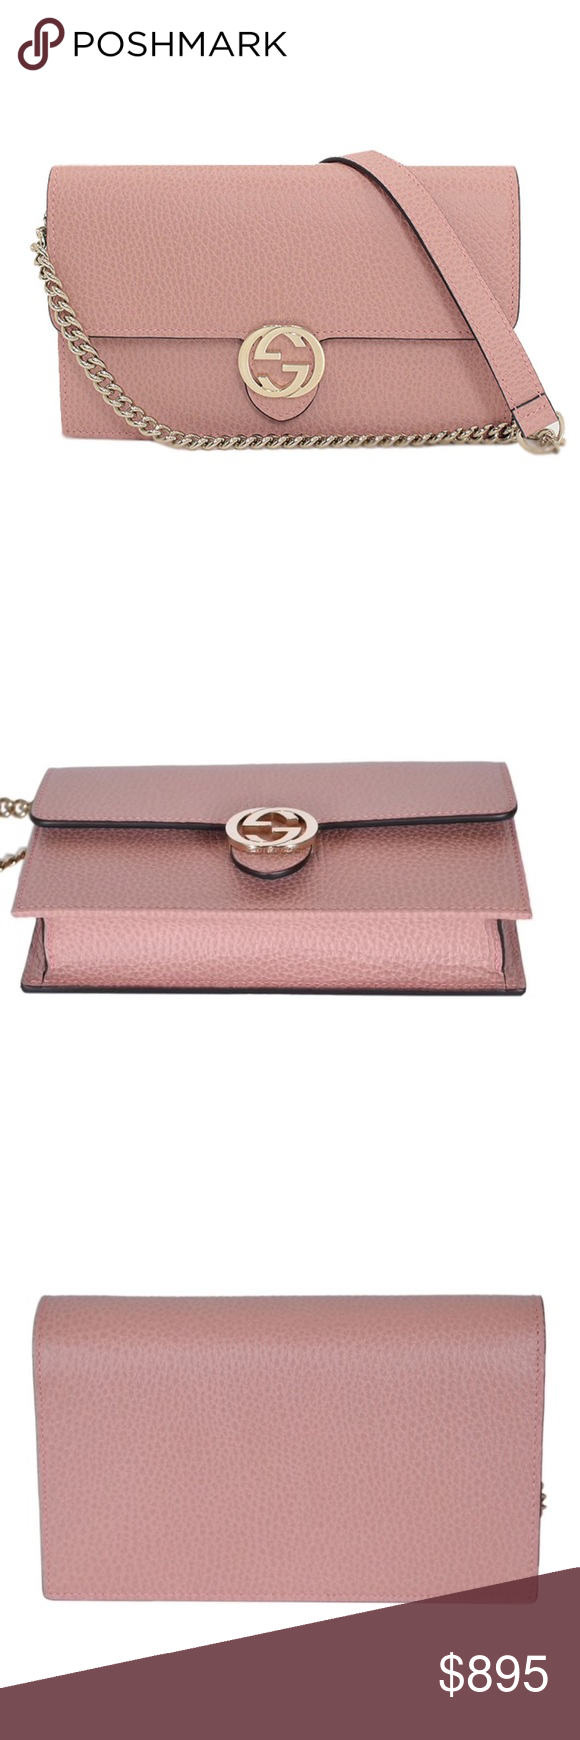 Gucci Interlocking G Crossbody Wallet On Chain Bag NEW Gucci Pink Leather Interlocking GG Crossbody Wallet On Chain Bag Clutch 510314  Authenticity Guaranteed  DETAILS  Brand: Gucci  Condition: brand new  Retail price: $1290 plus tax Style: 510314 Color: pink  Material: leather  1 billfold 18 card slots Zip coin compartment Made in Italy Included: Gucci dust bag, care cards and Controllato card   MEASUREMENTS Length: 7.5 Height: 4.5 Width: 1.6  Strap drop: 48  Style: 510314 CA00G 5806 Gucci  #chainbags